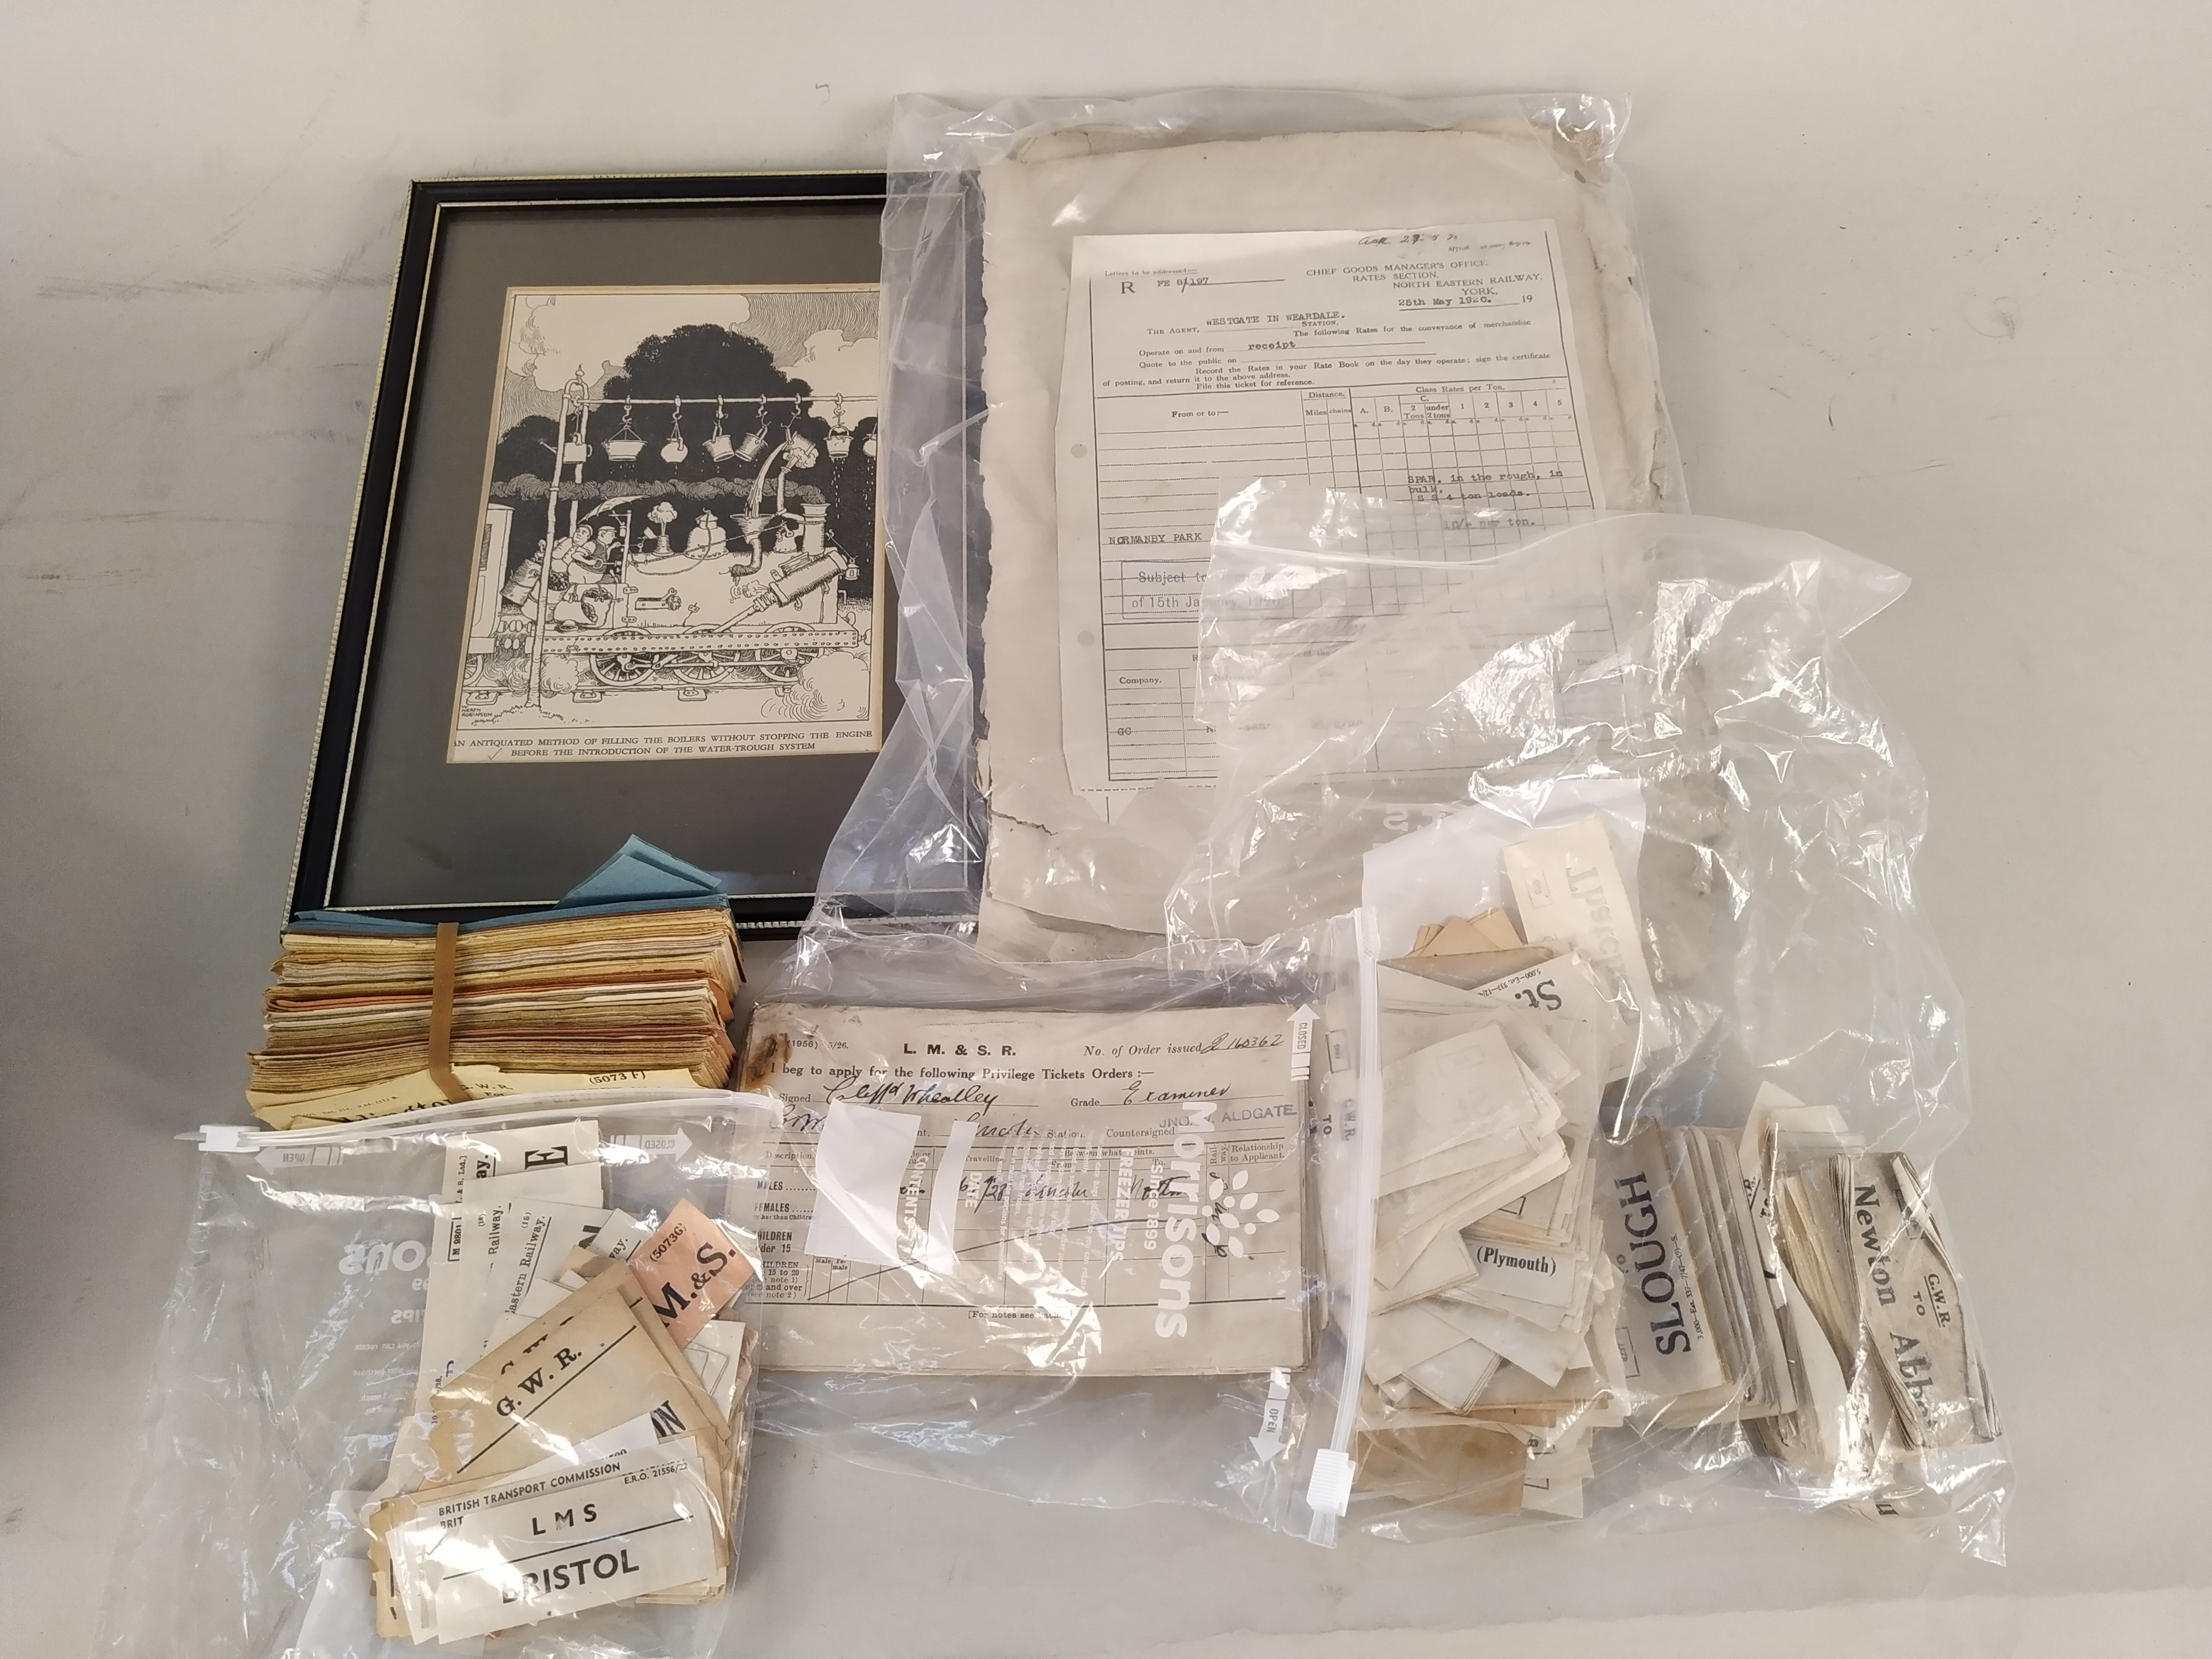 A good selection of vintage railway related ephemera including tickets, - Image 3 of 4